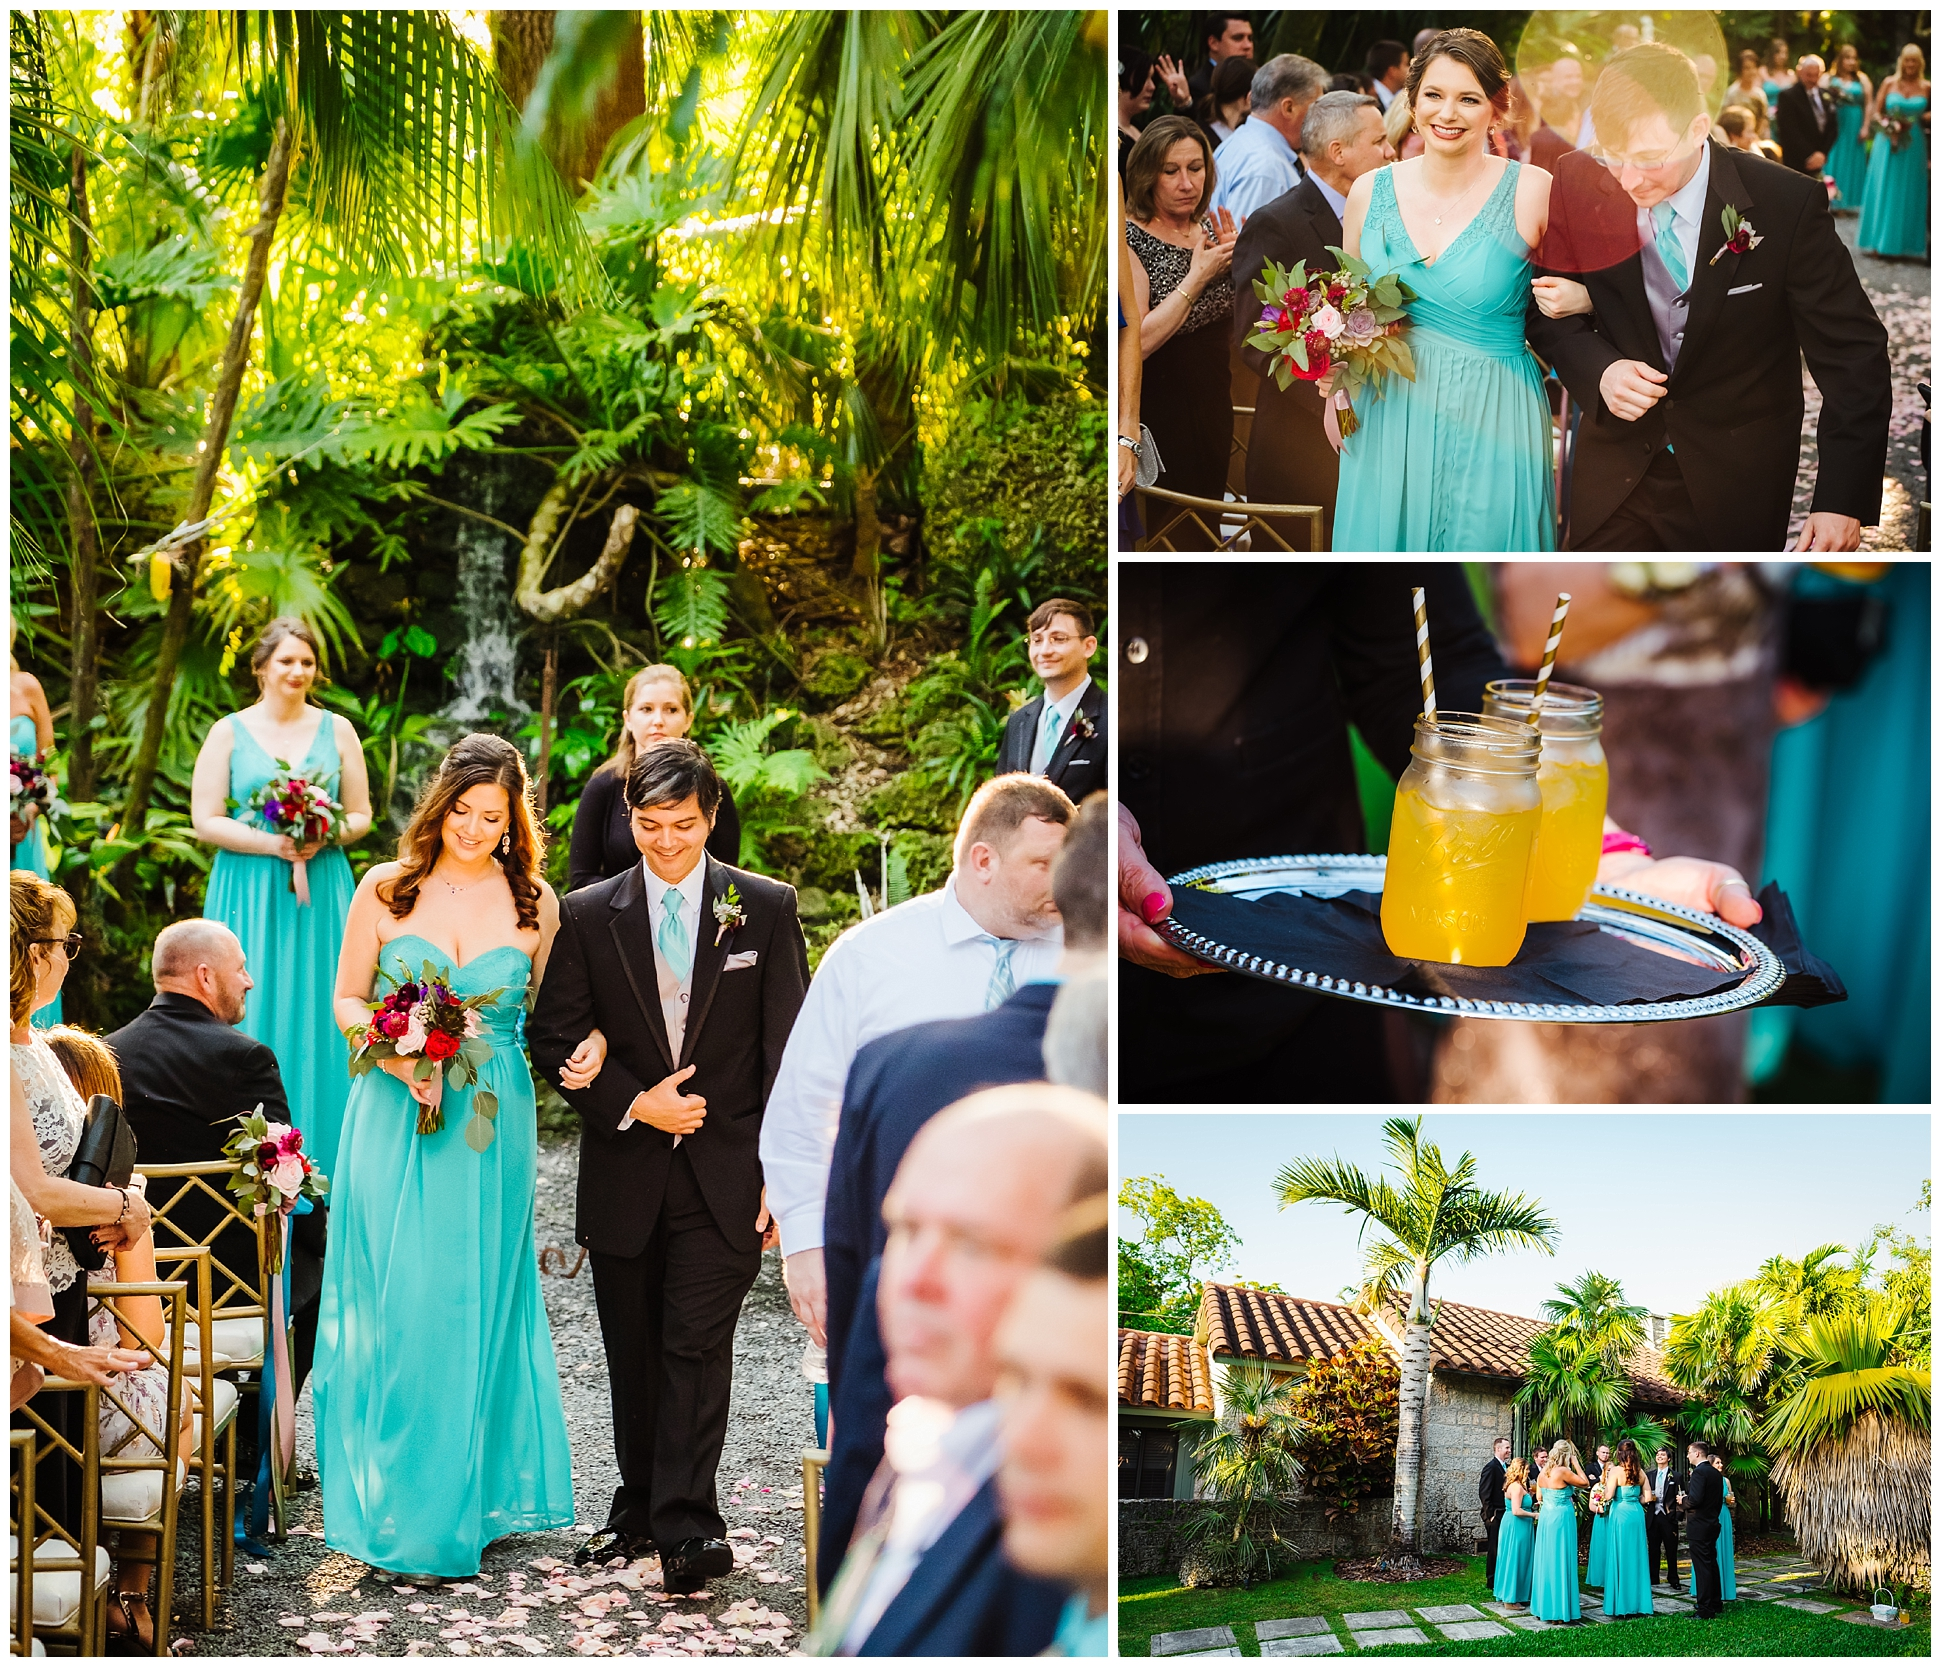 florida-destination-wedding-photographer-enchanted-tropical-miami-homestead-cooper-estate-teal_0055.jpg